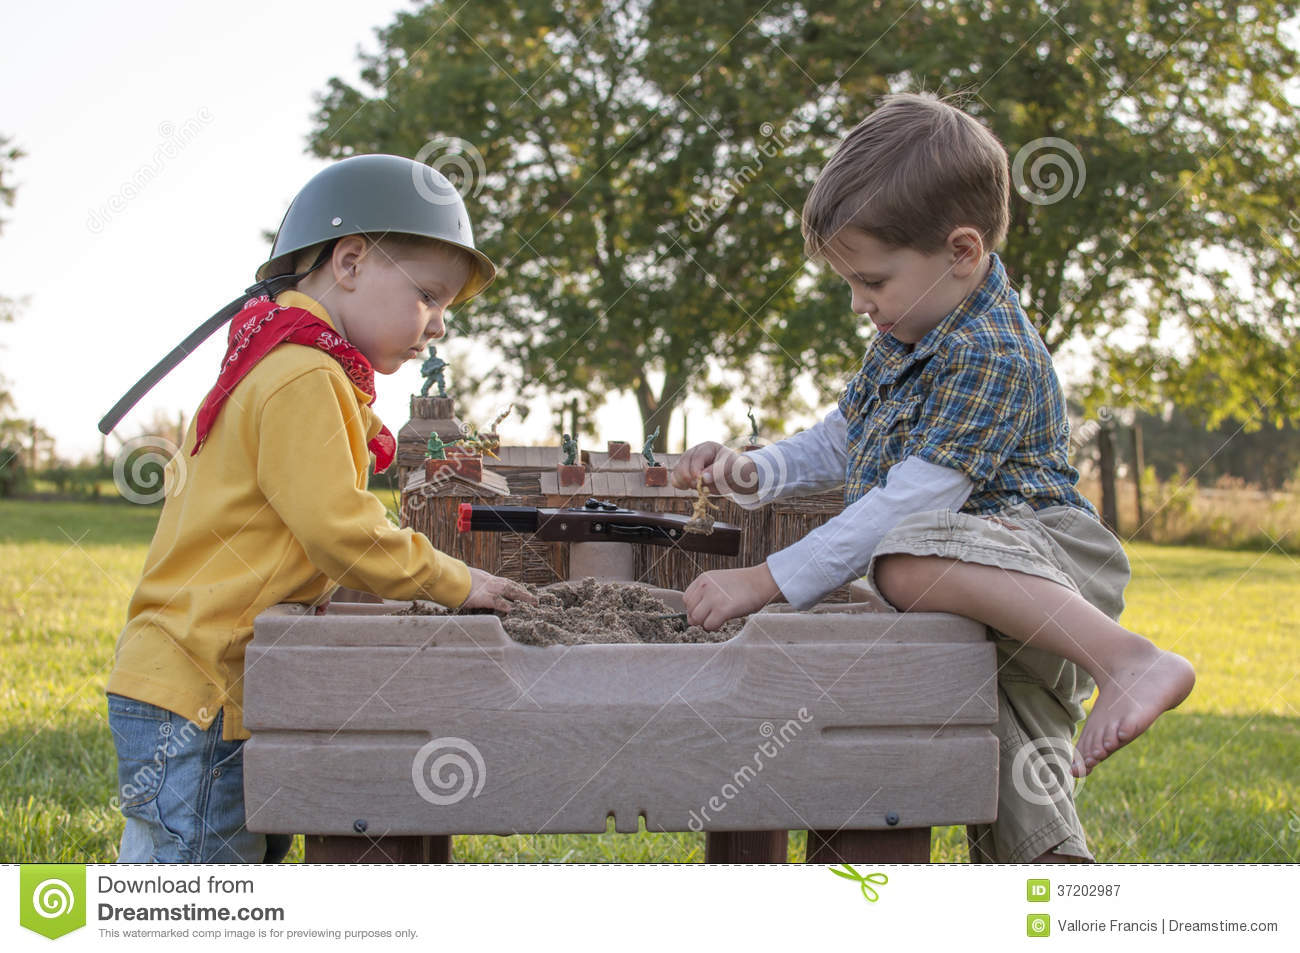 Two little boys playing soldiers with green army men in a sandbox and